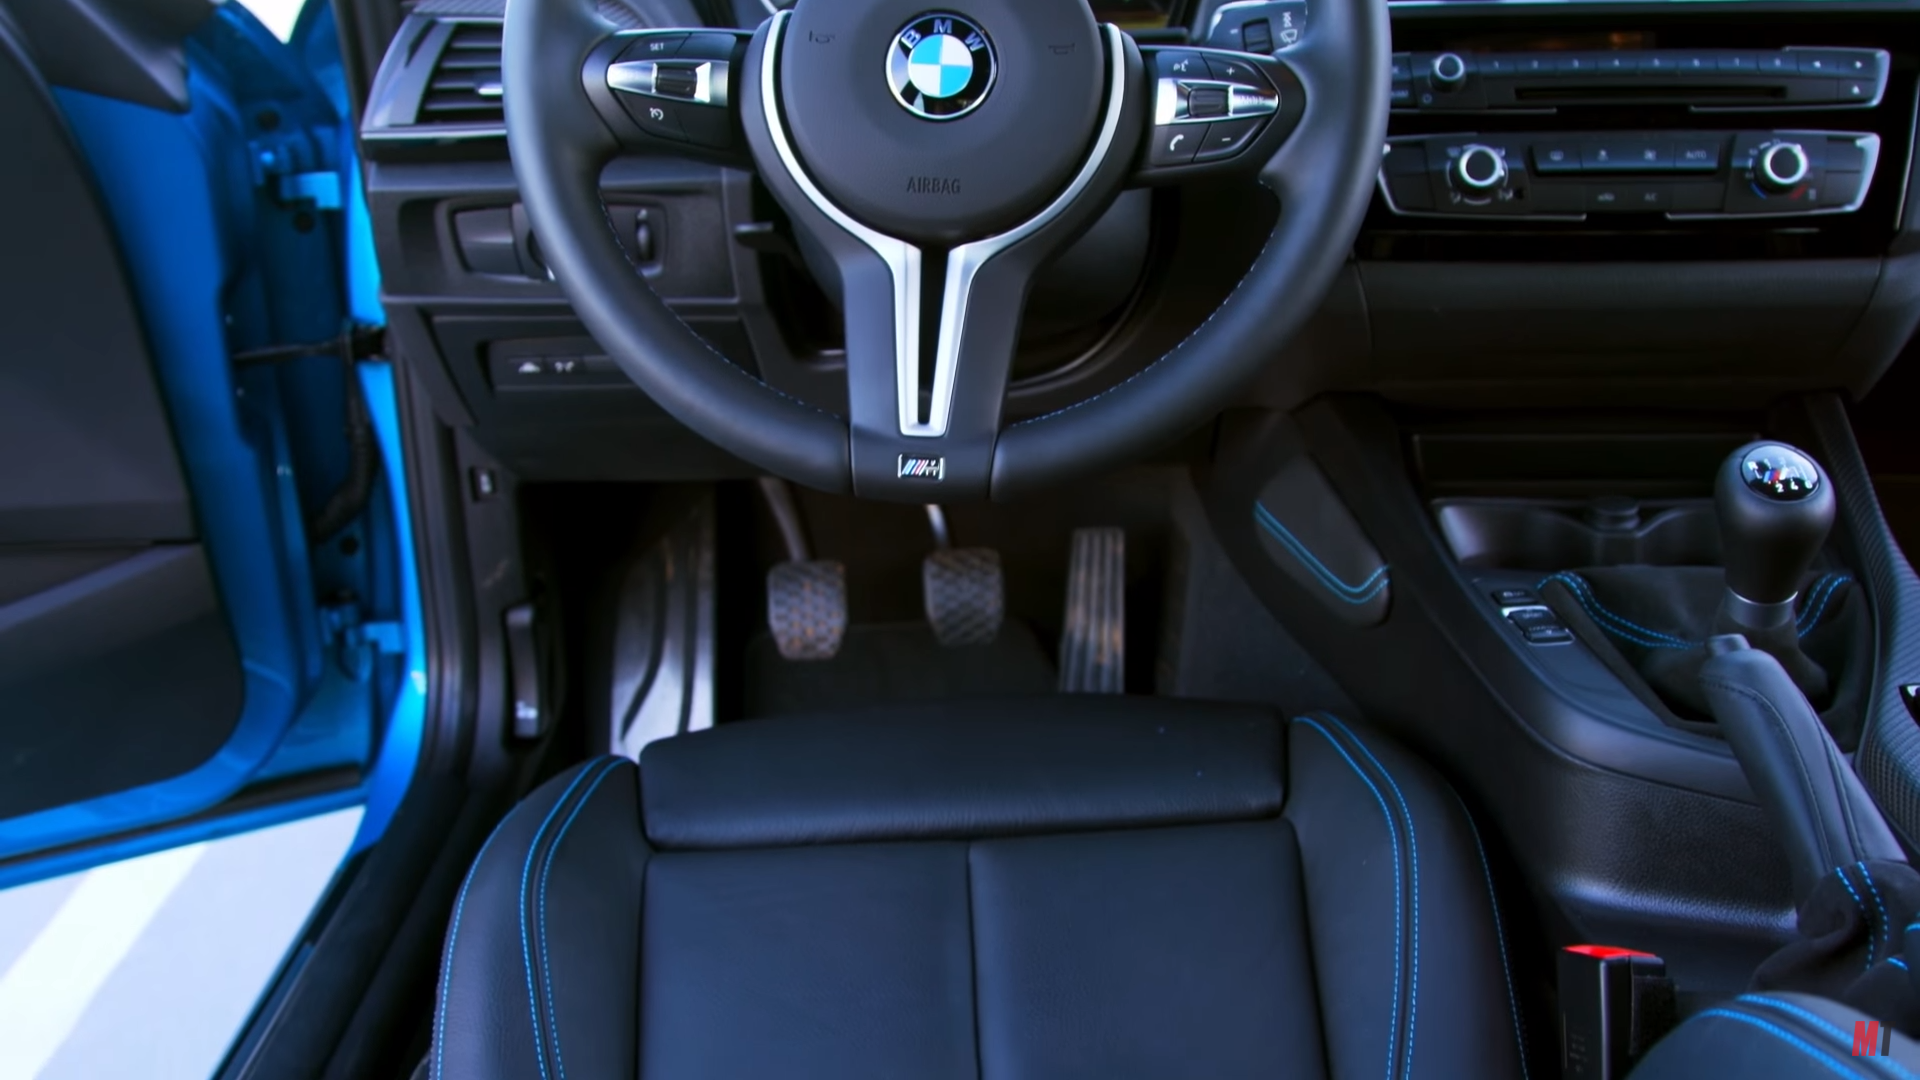 Still can't really tell how crooked the seat is Photo: Motor Trend YouTube